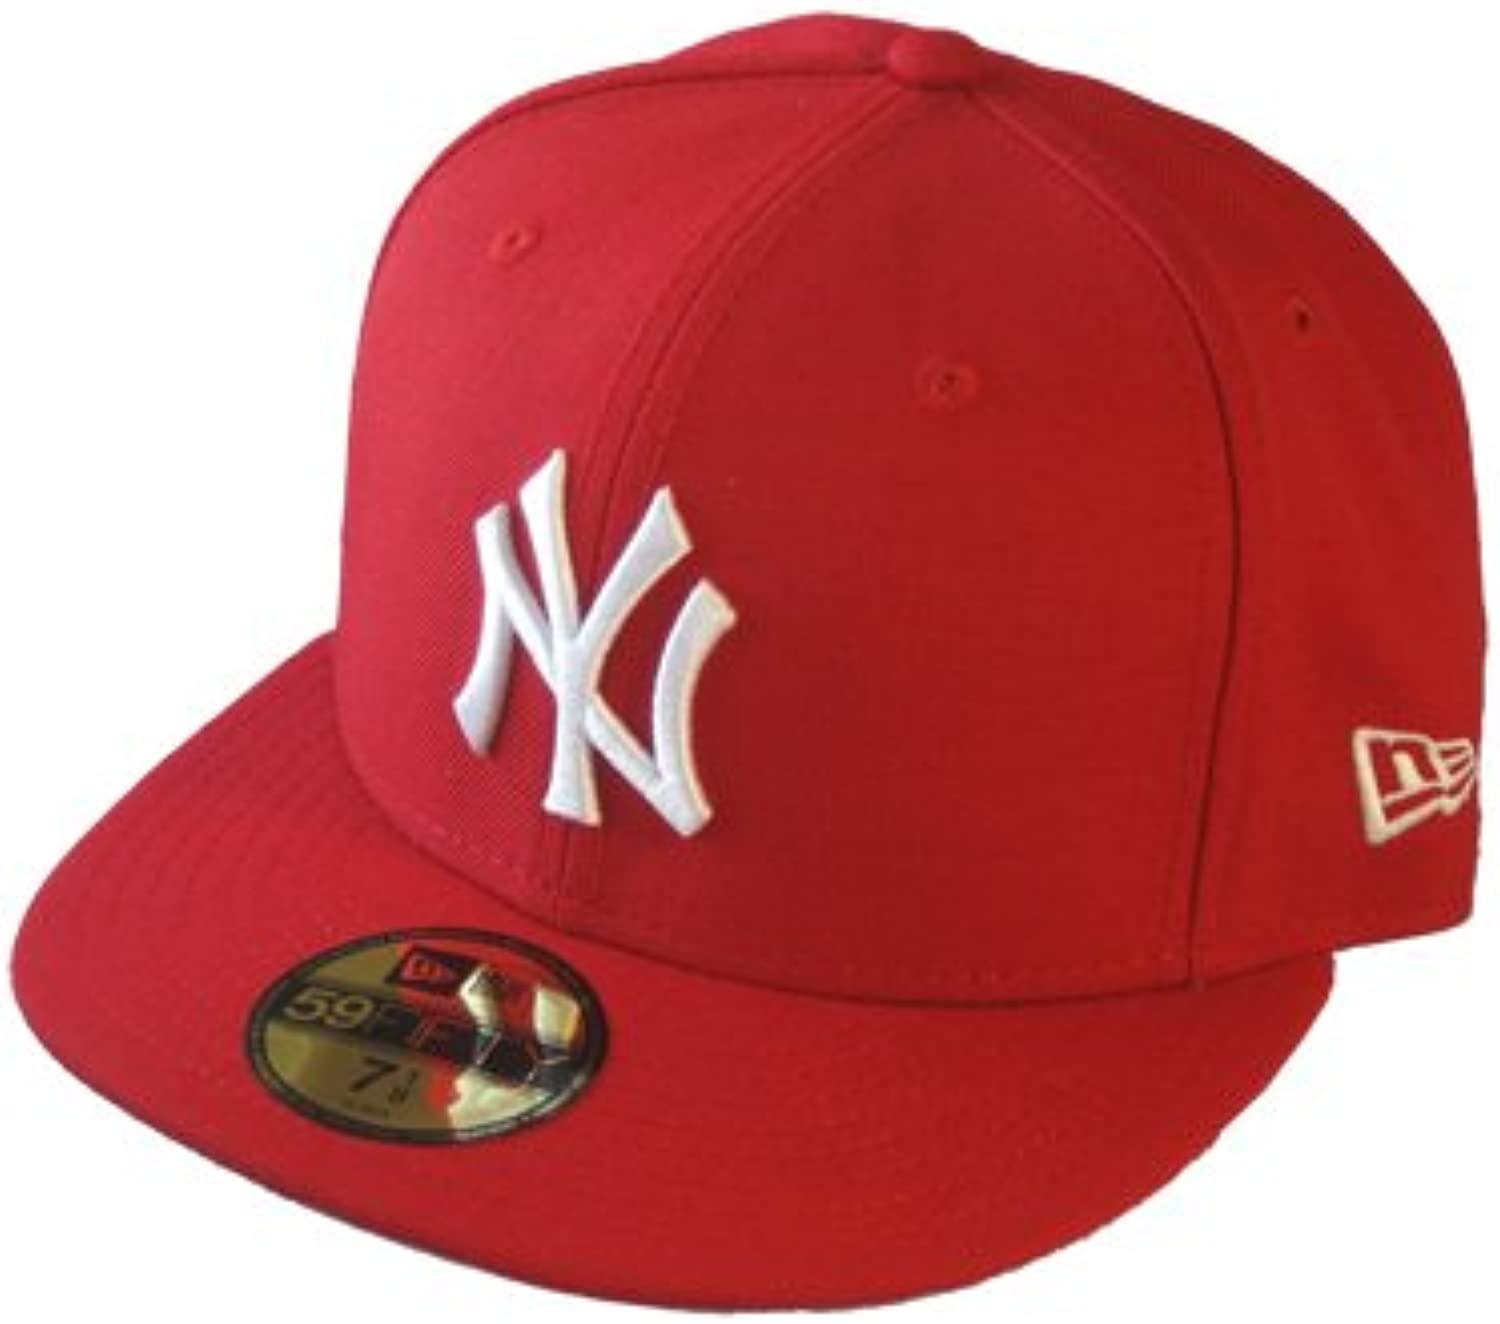 New Era ERA Adulti Berretto da Baseball MLB Bianco Basic NY Yankees 59 Fifty  Bianco MLB Rosso L Parent 8e690d 3d2f88506ca9